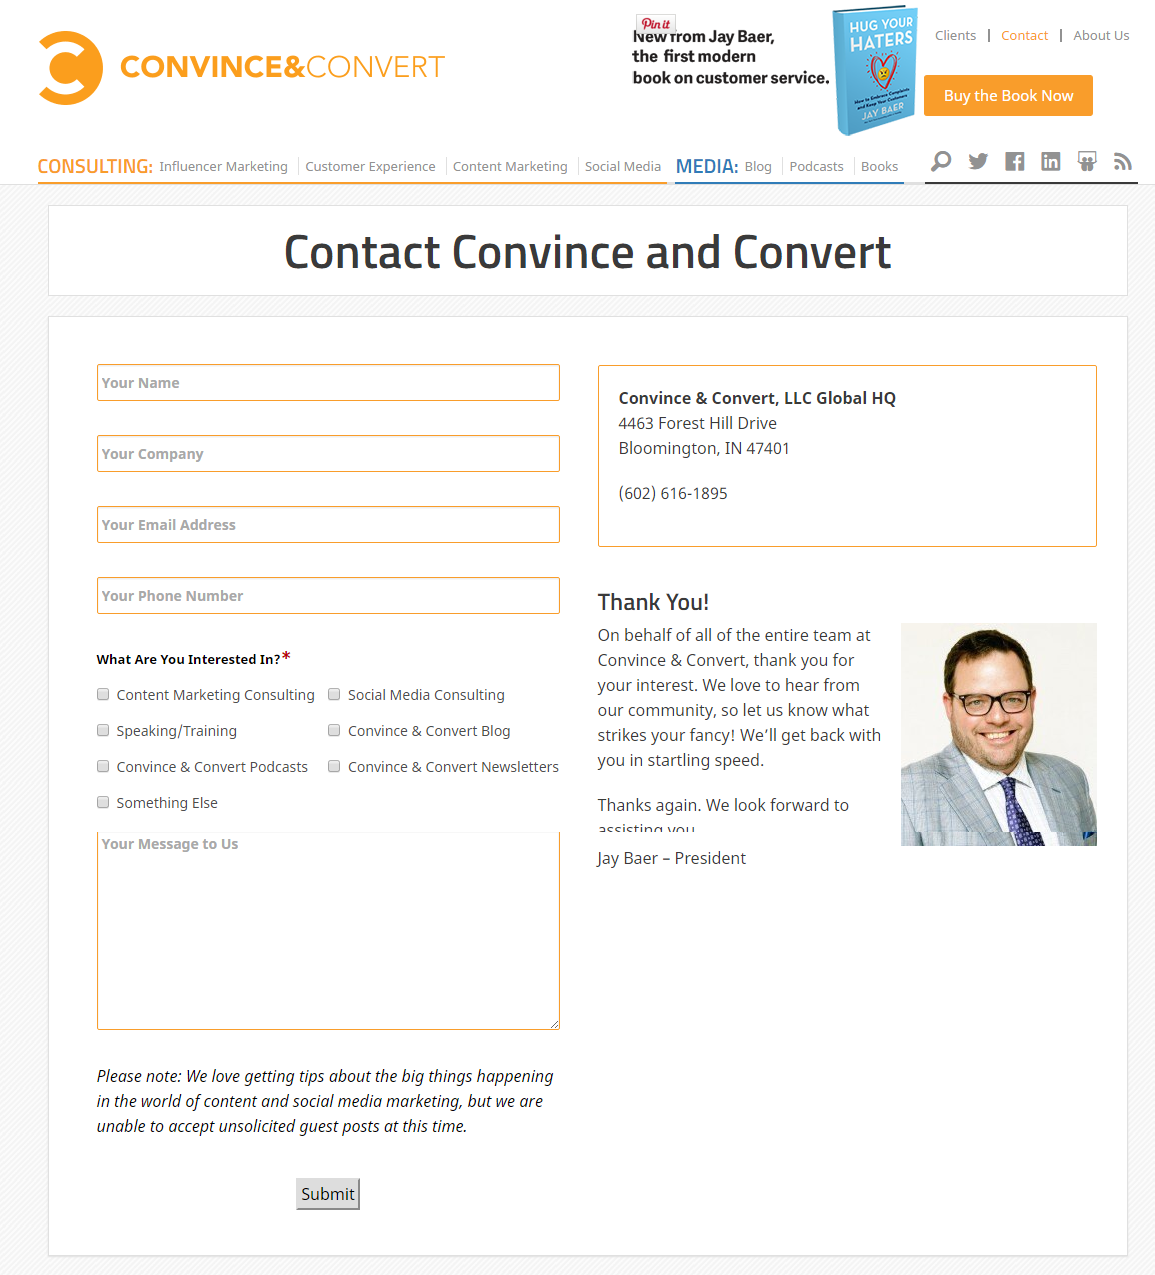 Convince and Convert contact us page